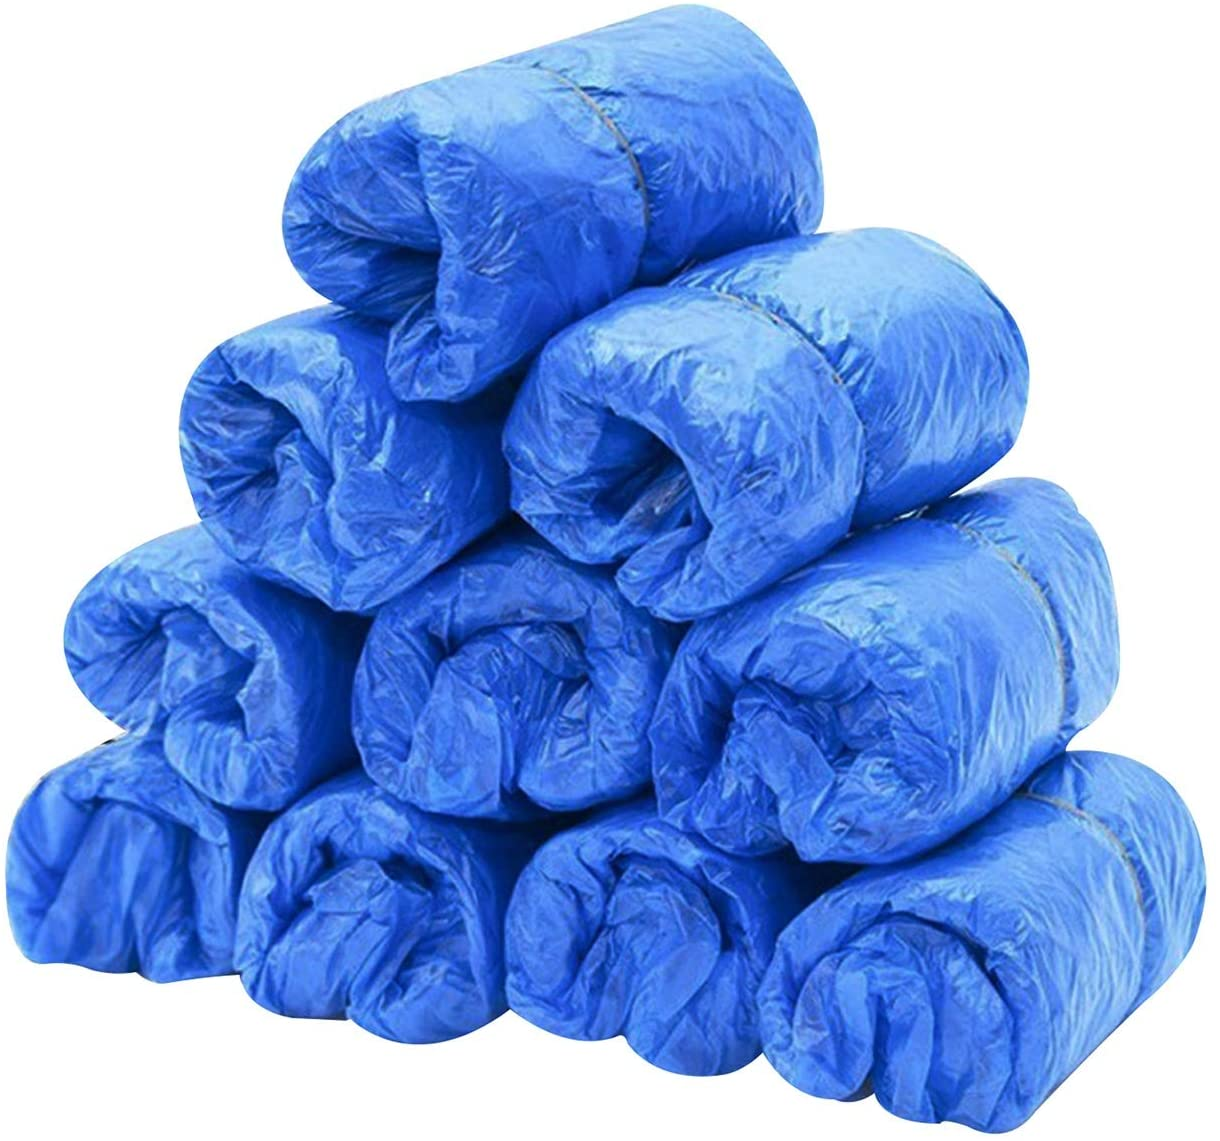 Disposable Shoe & Boot Covers for Construction, Workplace, Indoor Carpet Floor Protection,One Size (100, CPE)